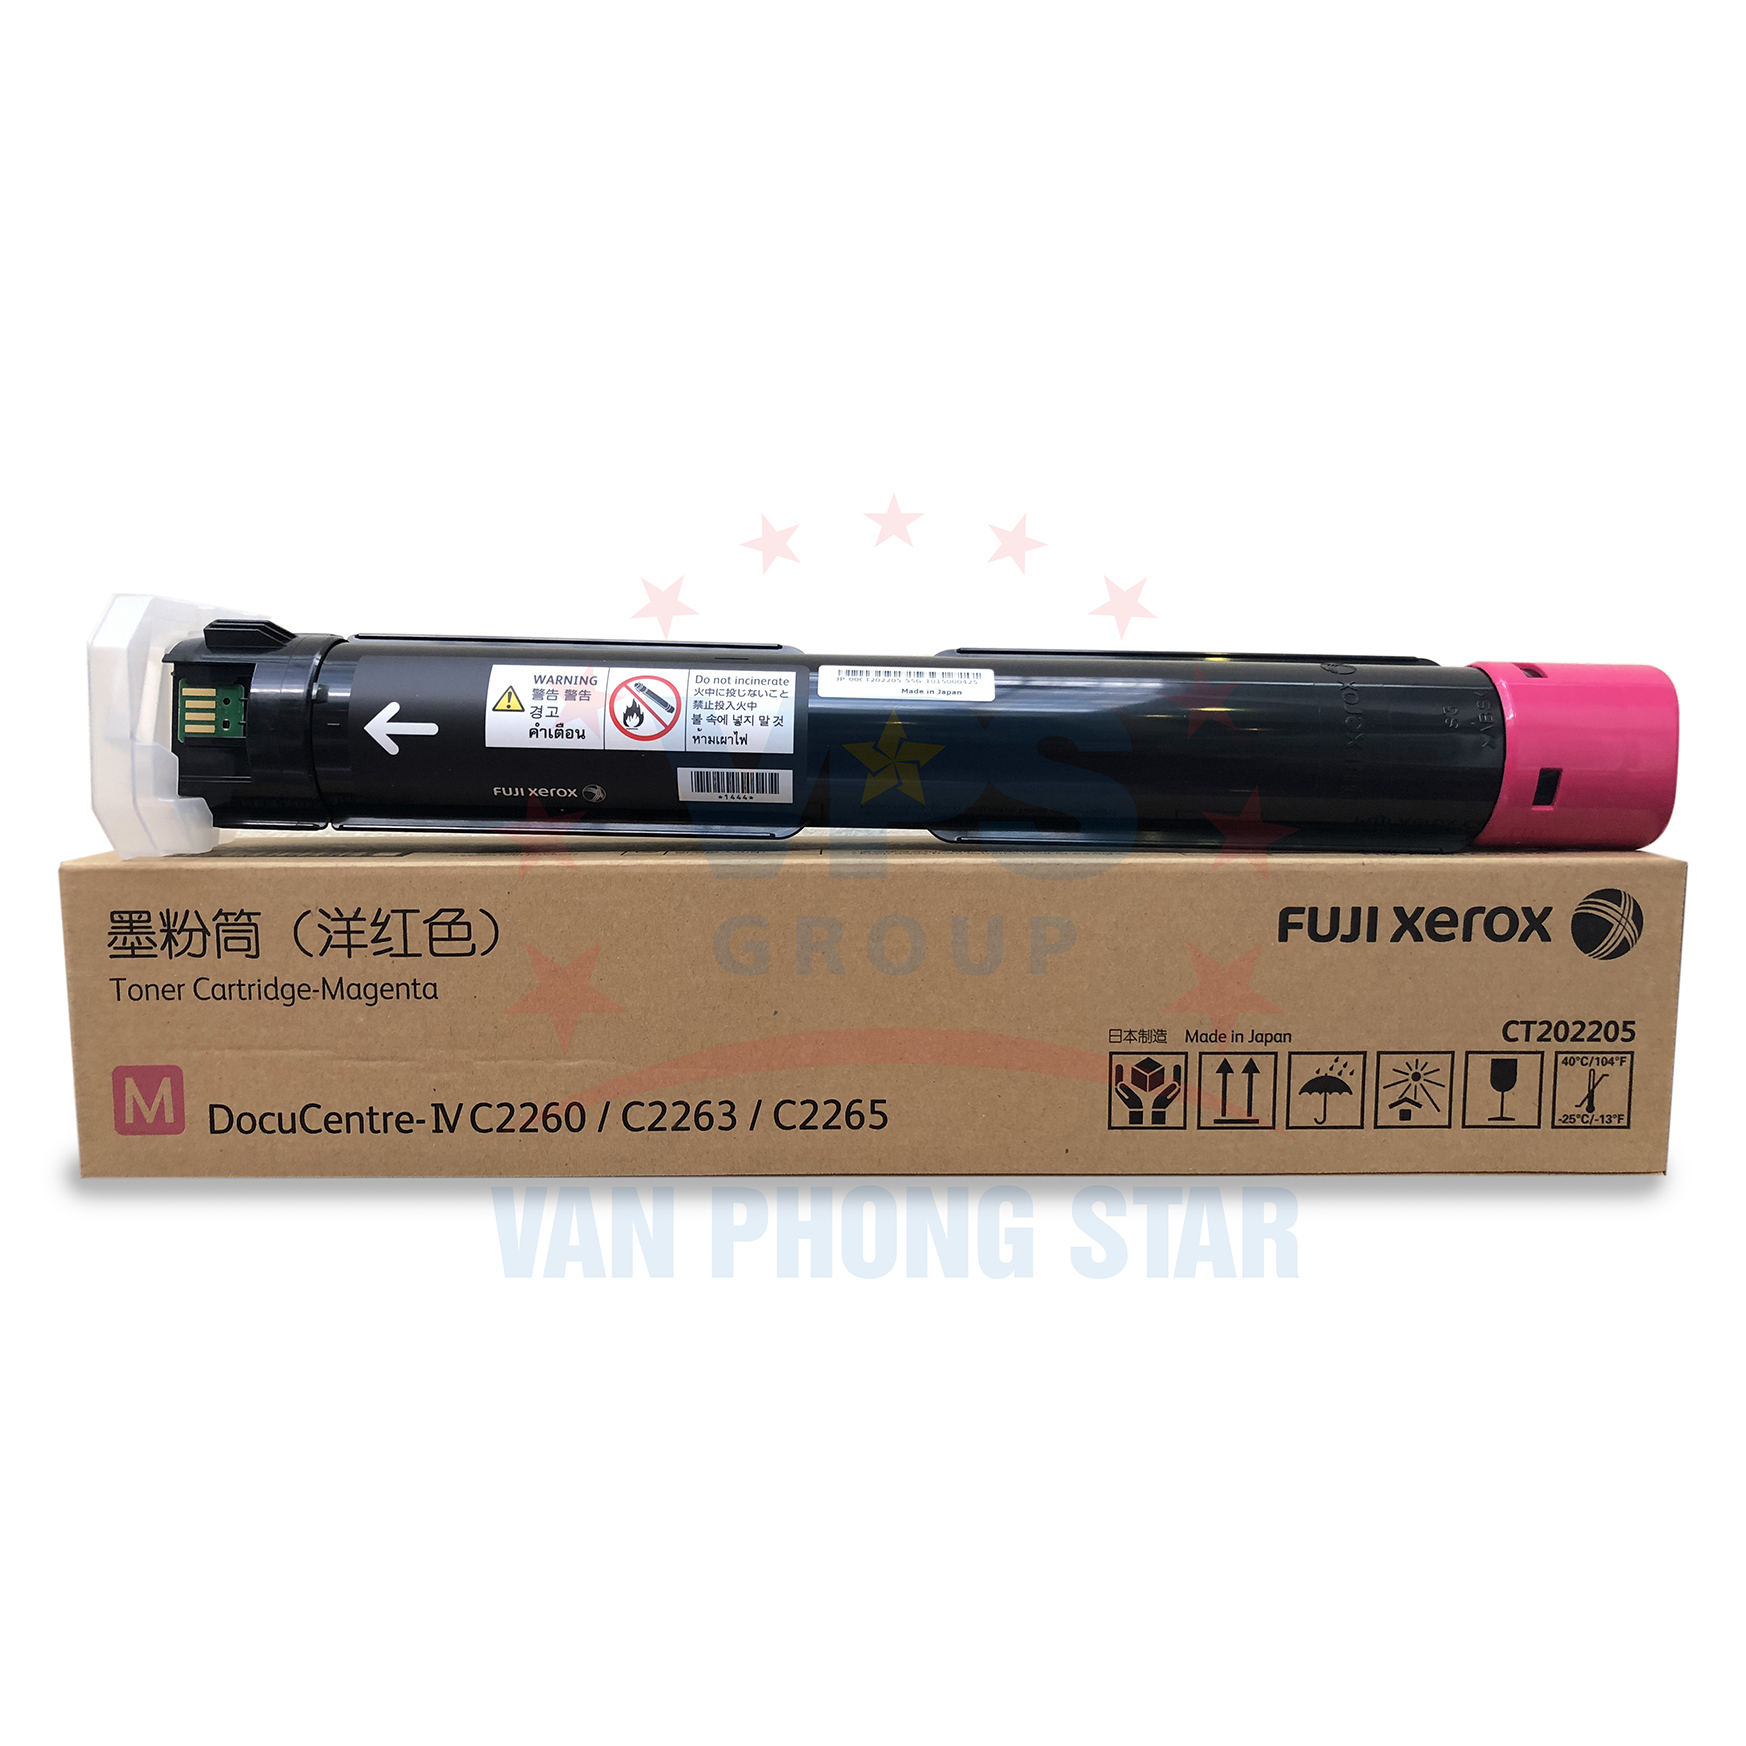 muc-dung-cho-may-xerox-docucentre-iv-c2260-c2263-c2265-toner-cartridge-magenta-d